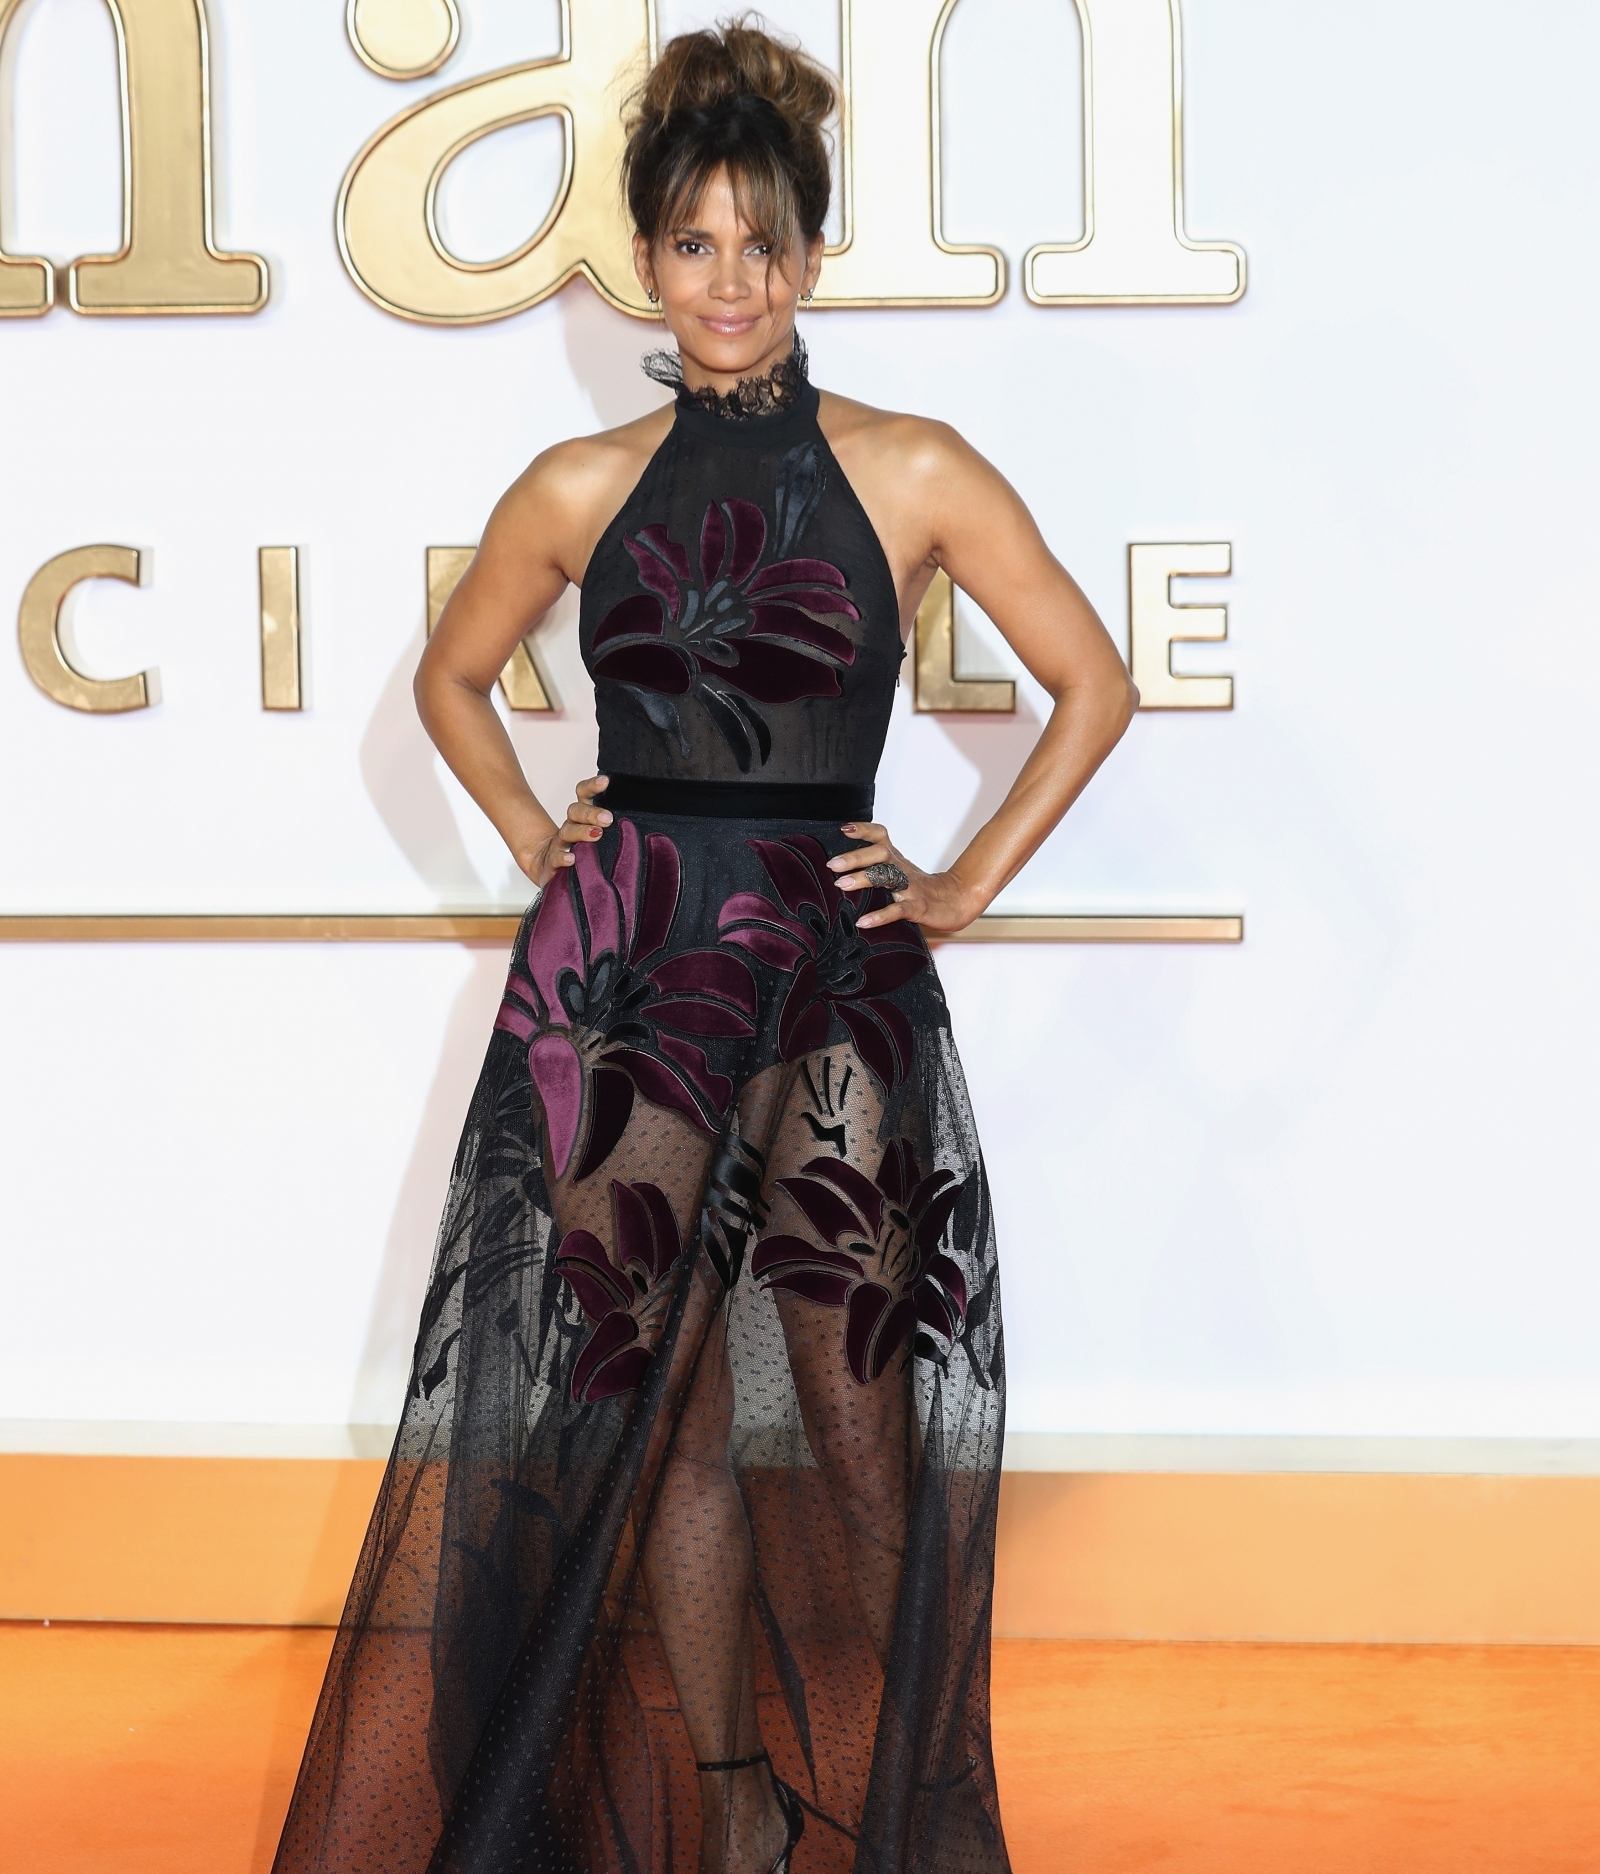 Ageless Beauty Halle Berry Flaunts Her Peachy Derriere